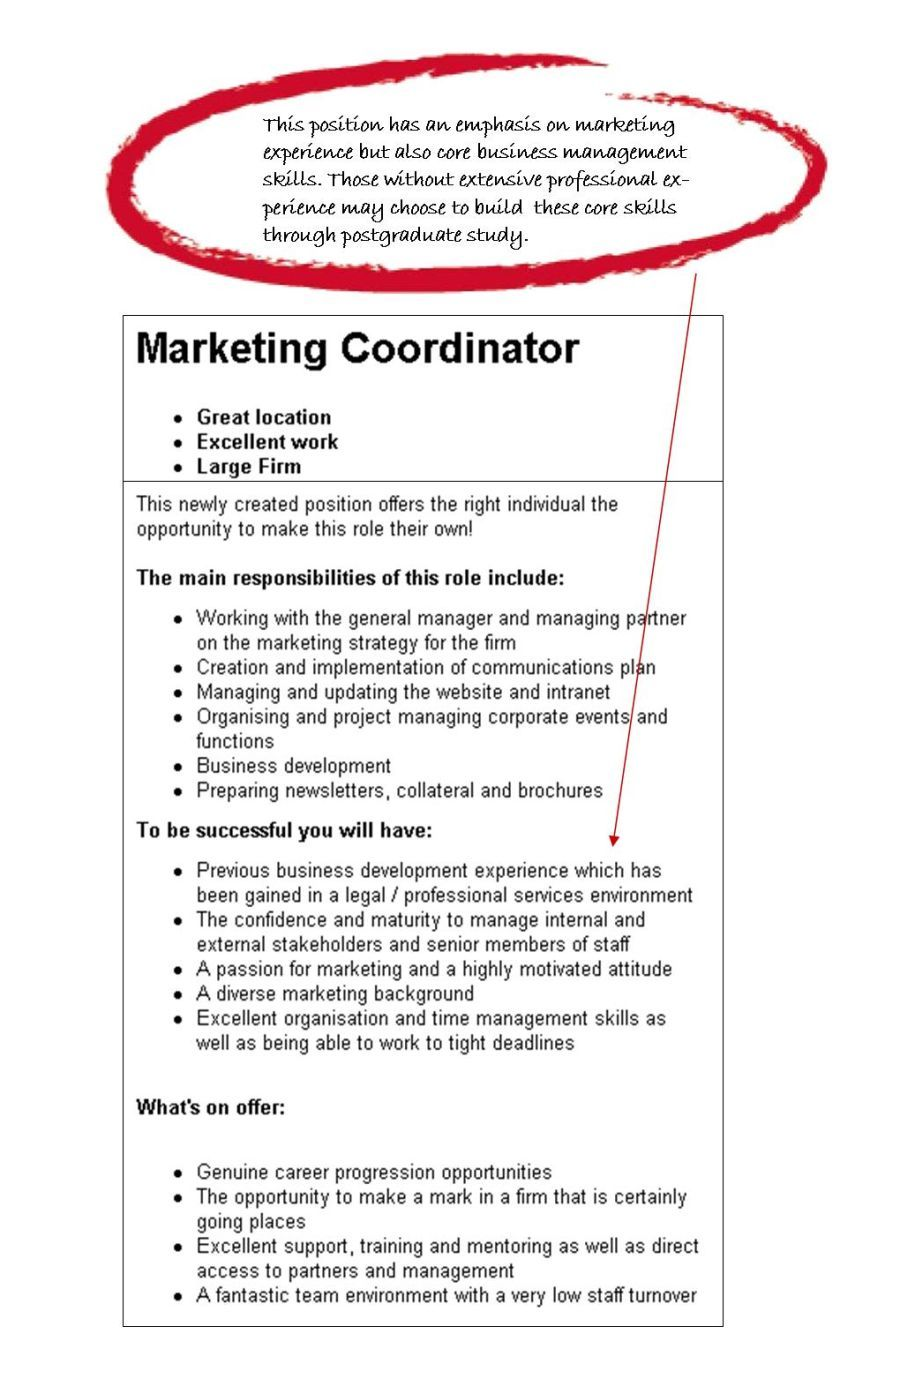 Sample Resume Objective Statement Objectives For Resume  Resume  Pinterest  Resume Objective And